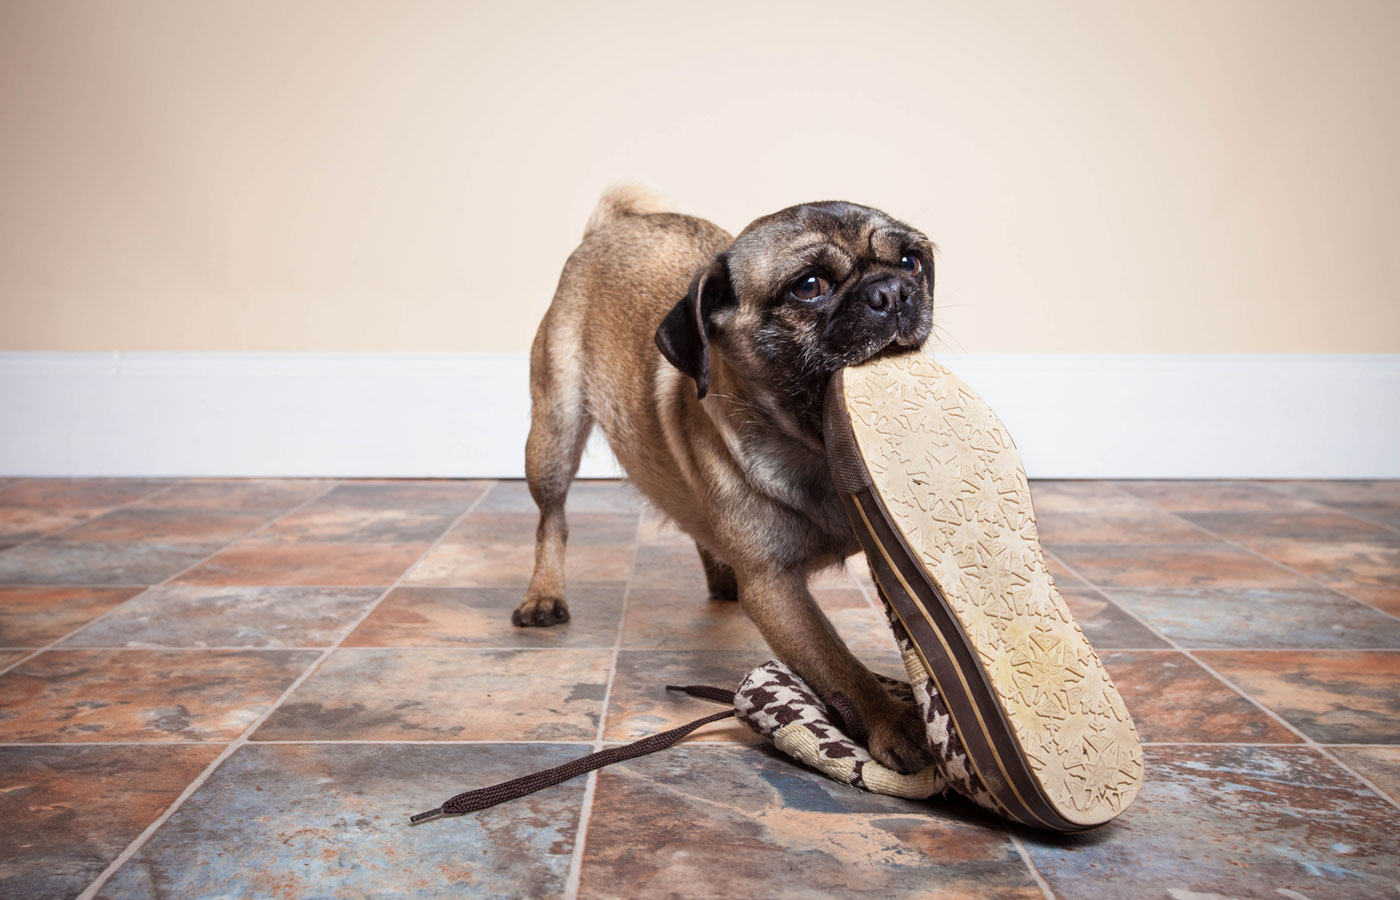 naughty Pug eating shoe on tiled floor